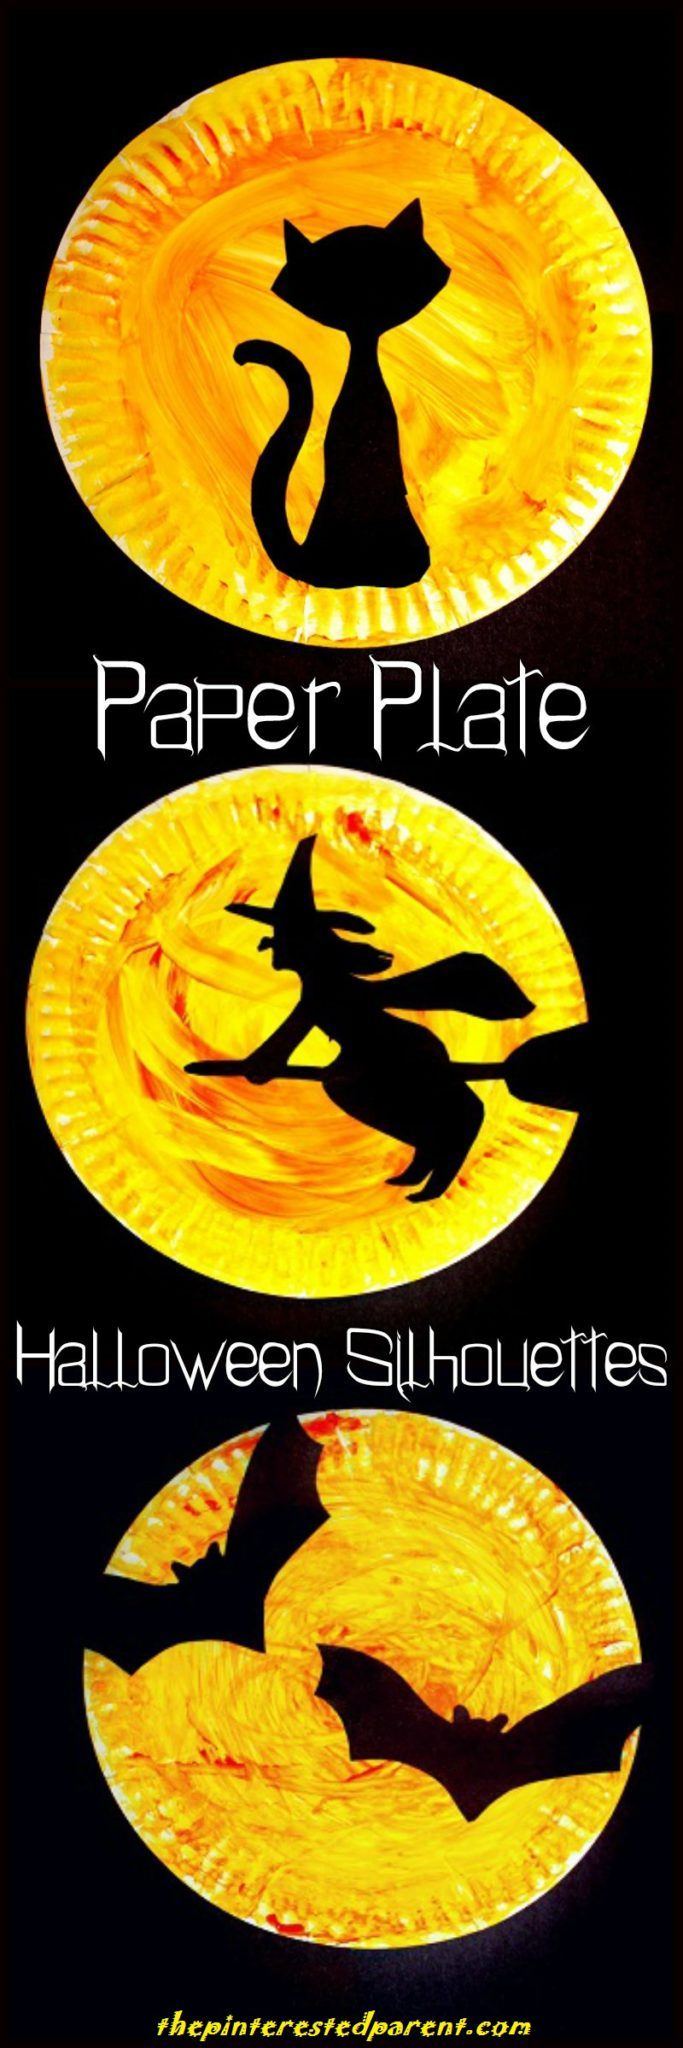 Halloween paper plate silhouette crafts the pinterested parent halloween paper plate silhouettes with printable template choose from a black cat a witch jeuxipadfo Image collections